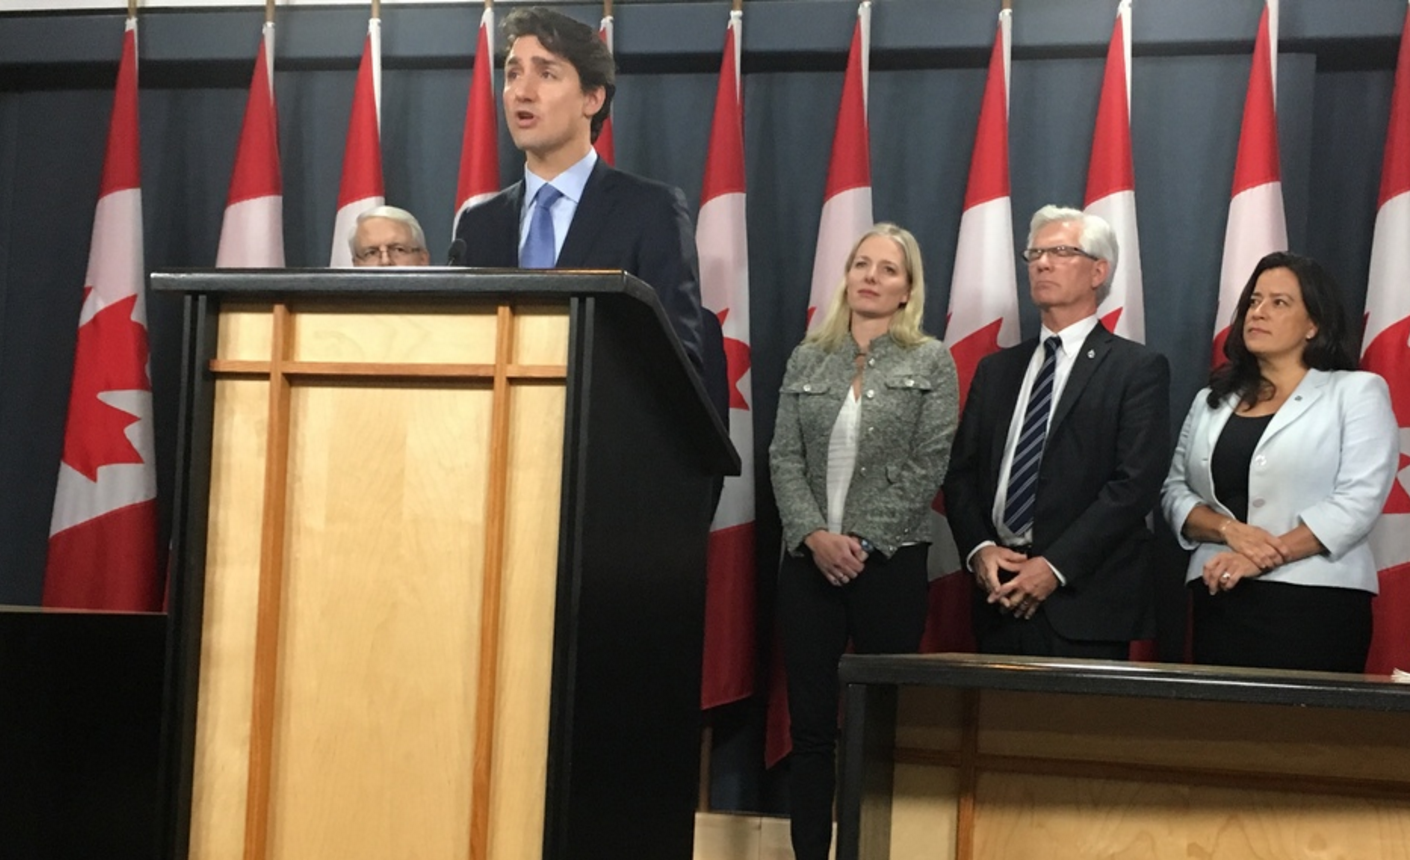 Justin Trudeau, Kinder Morgan, Trans Mountain expansion, Enbridge Northern Gateway